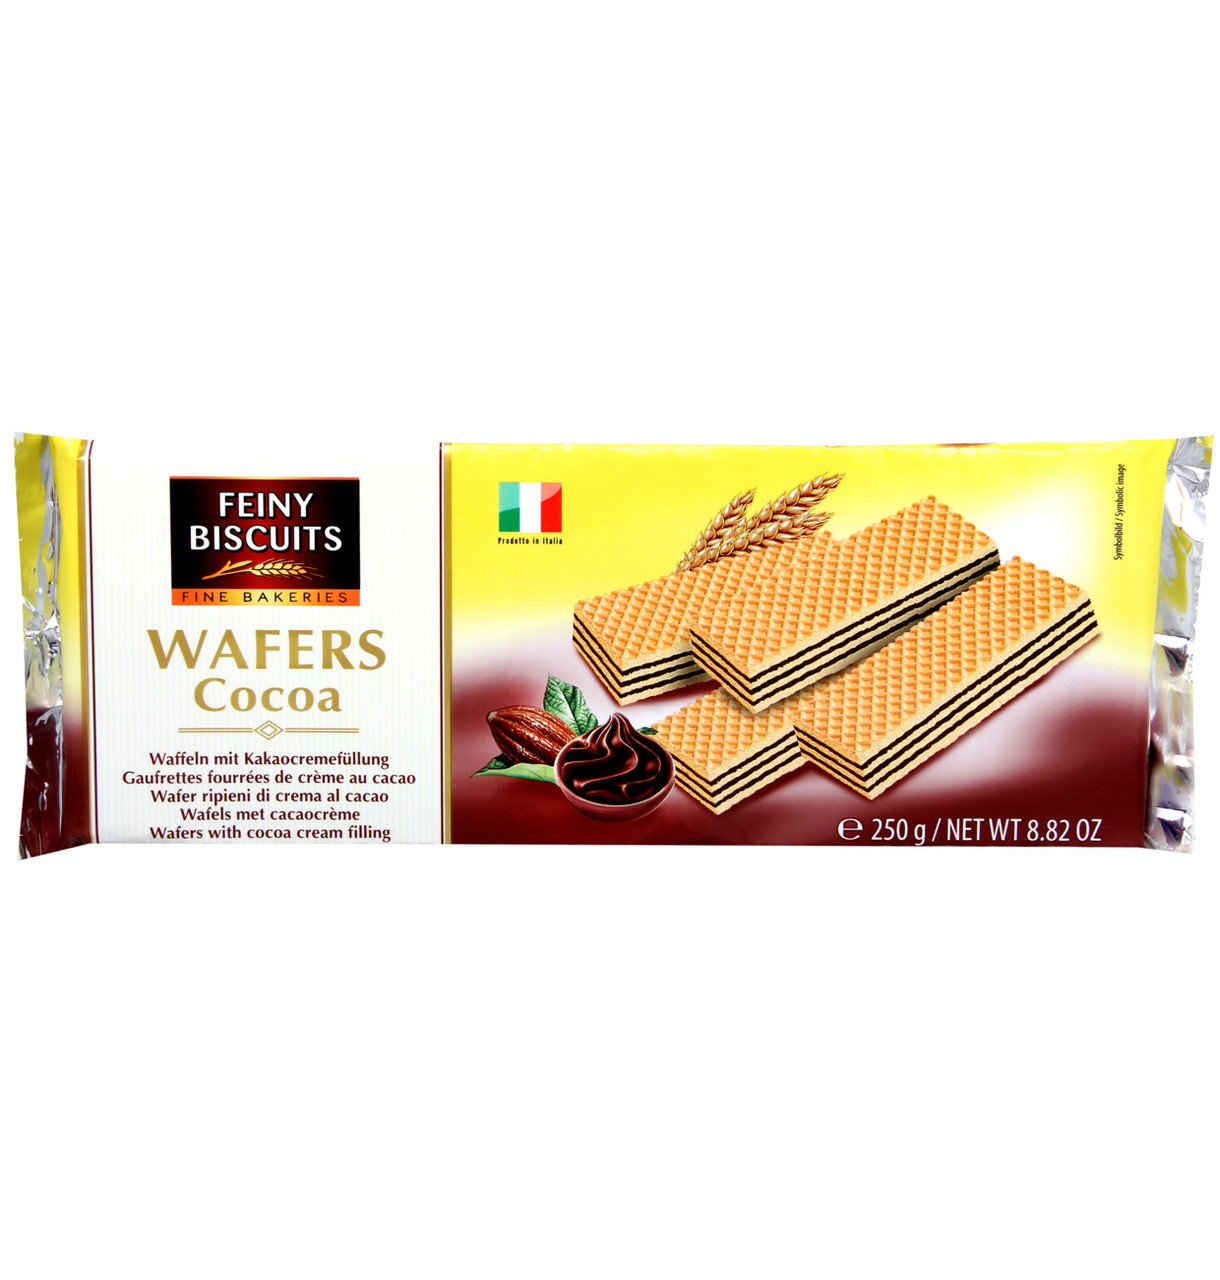 Feiny Biscuits Wafers Cocoa, 250 г